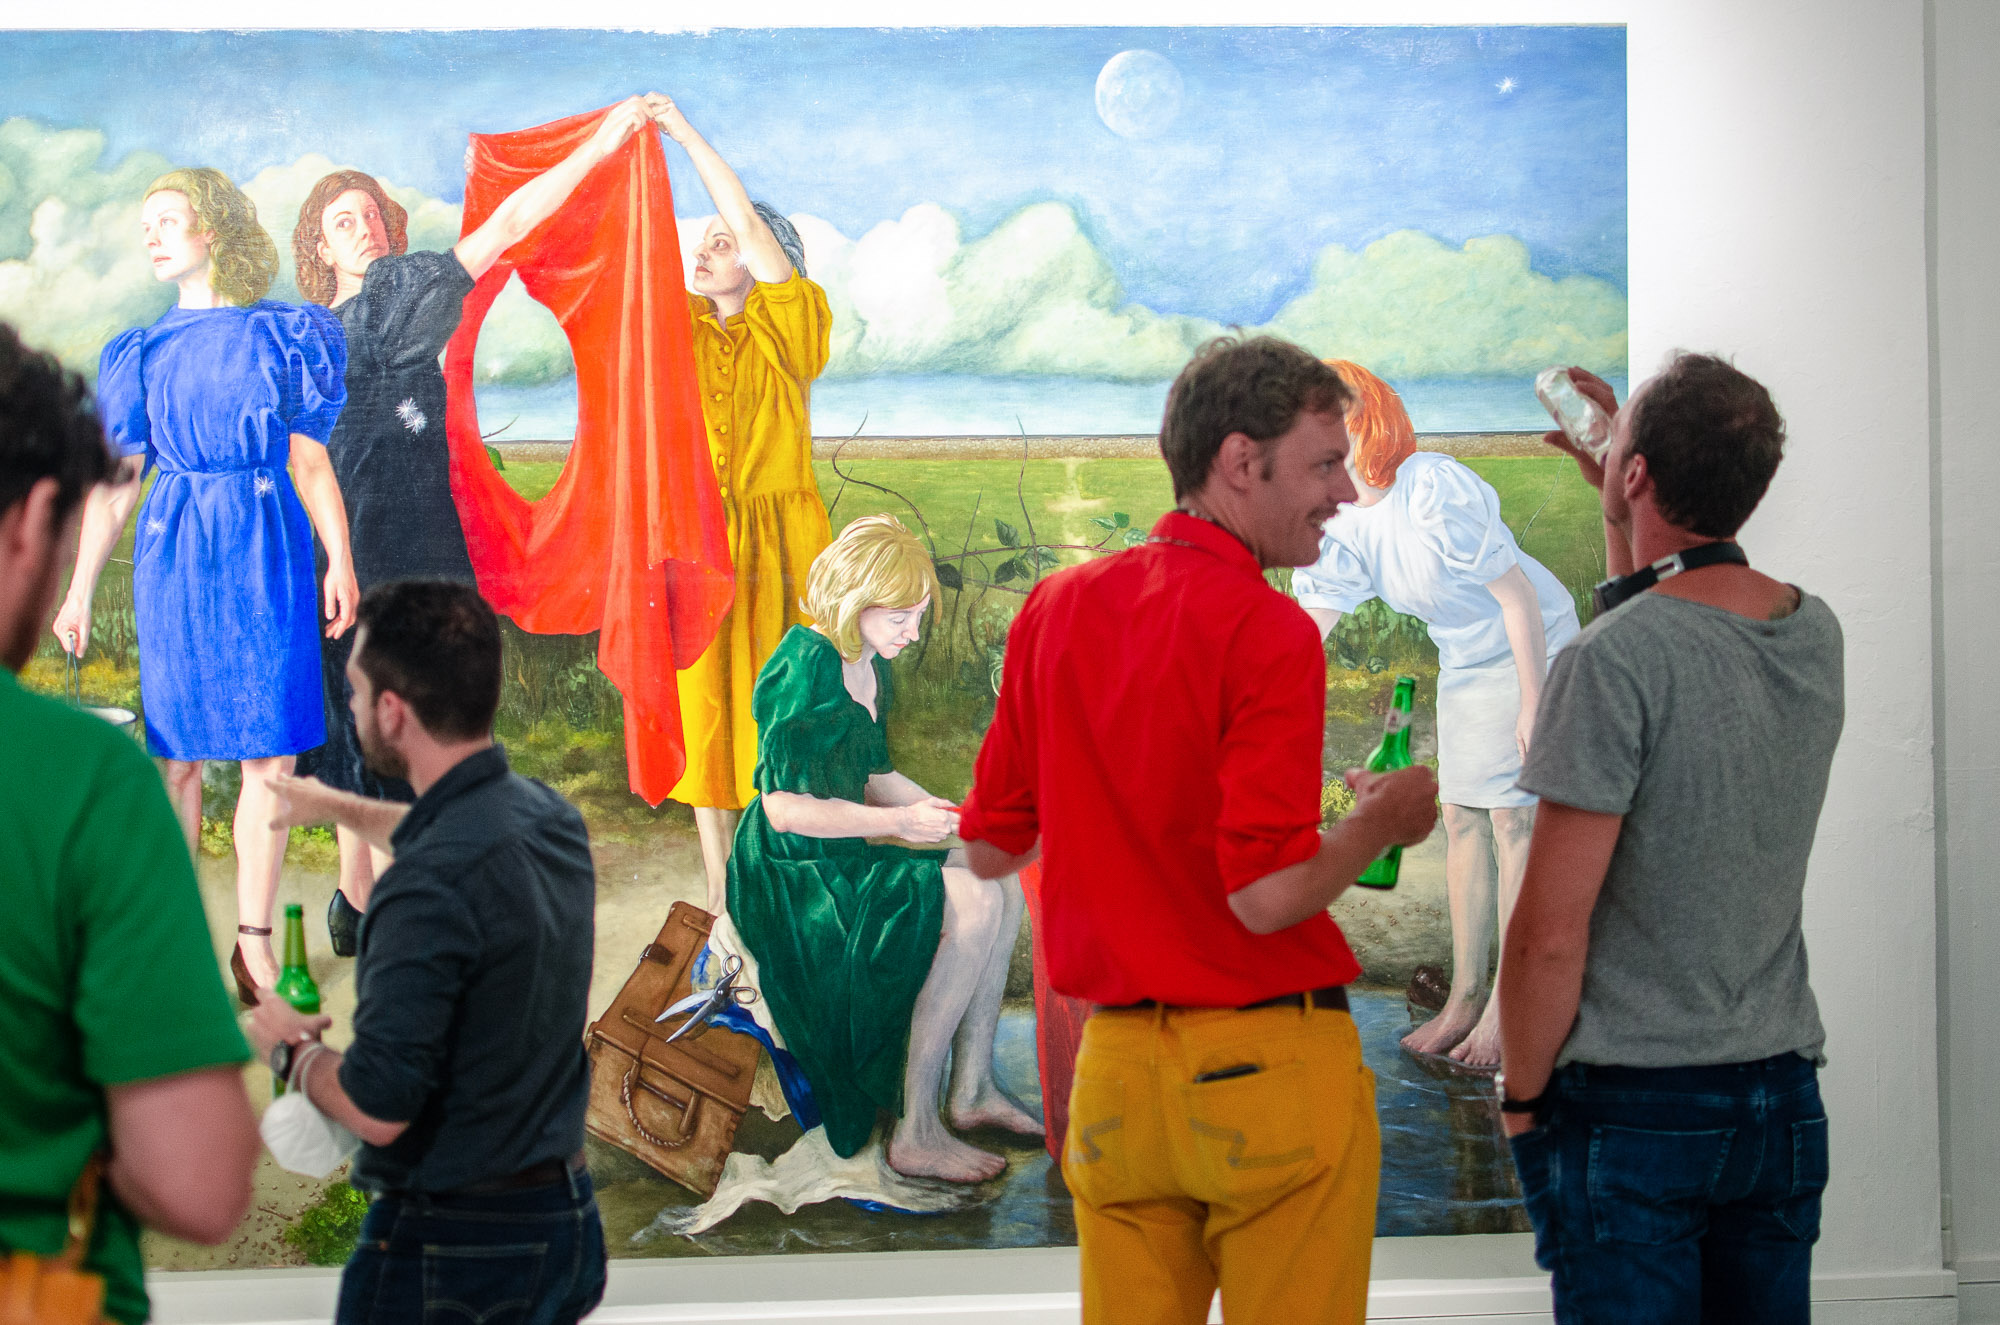 PKRD-48-Airy-Democratic-Spirituality-vernissage-PK-at-Alte-Handlesschule-20.08.21-Fanni-Papp-for-PK-13